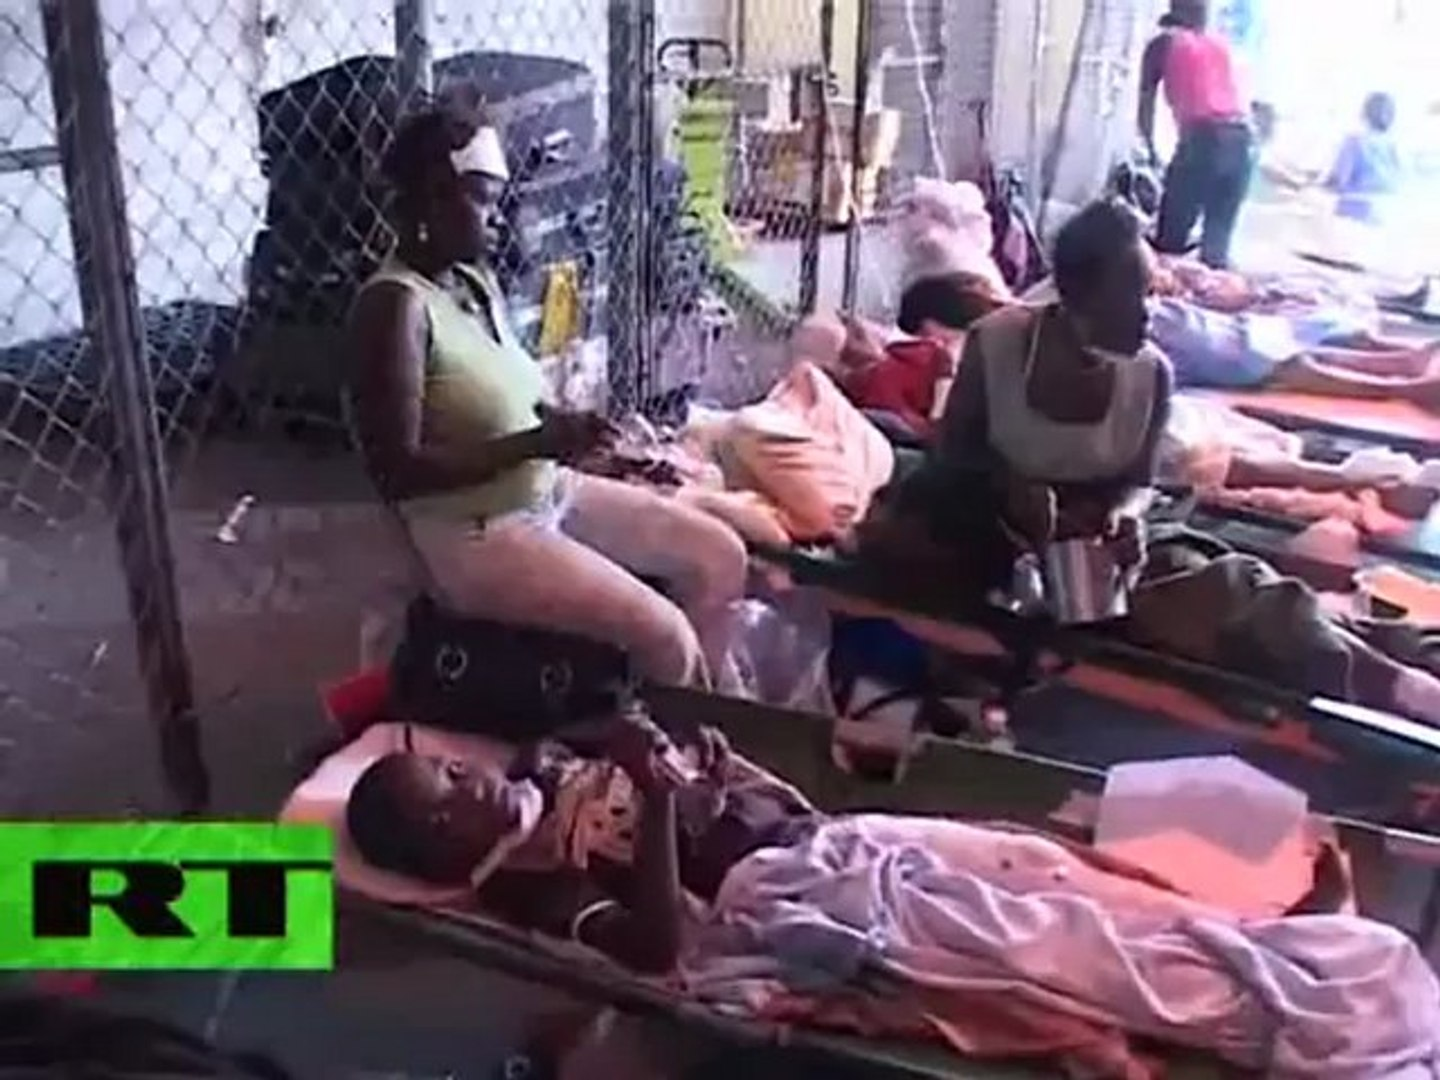 Tears and Pain in Haiti: Video from tent hospital